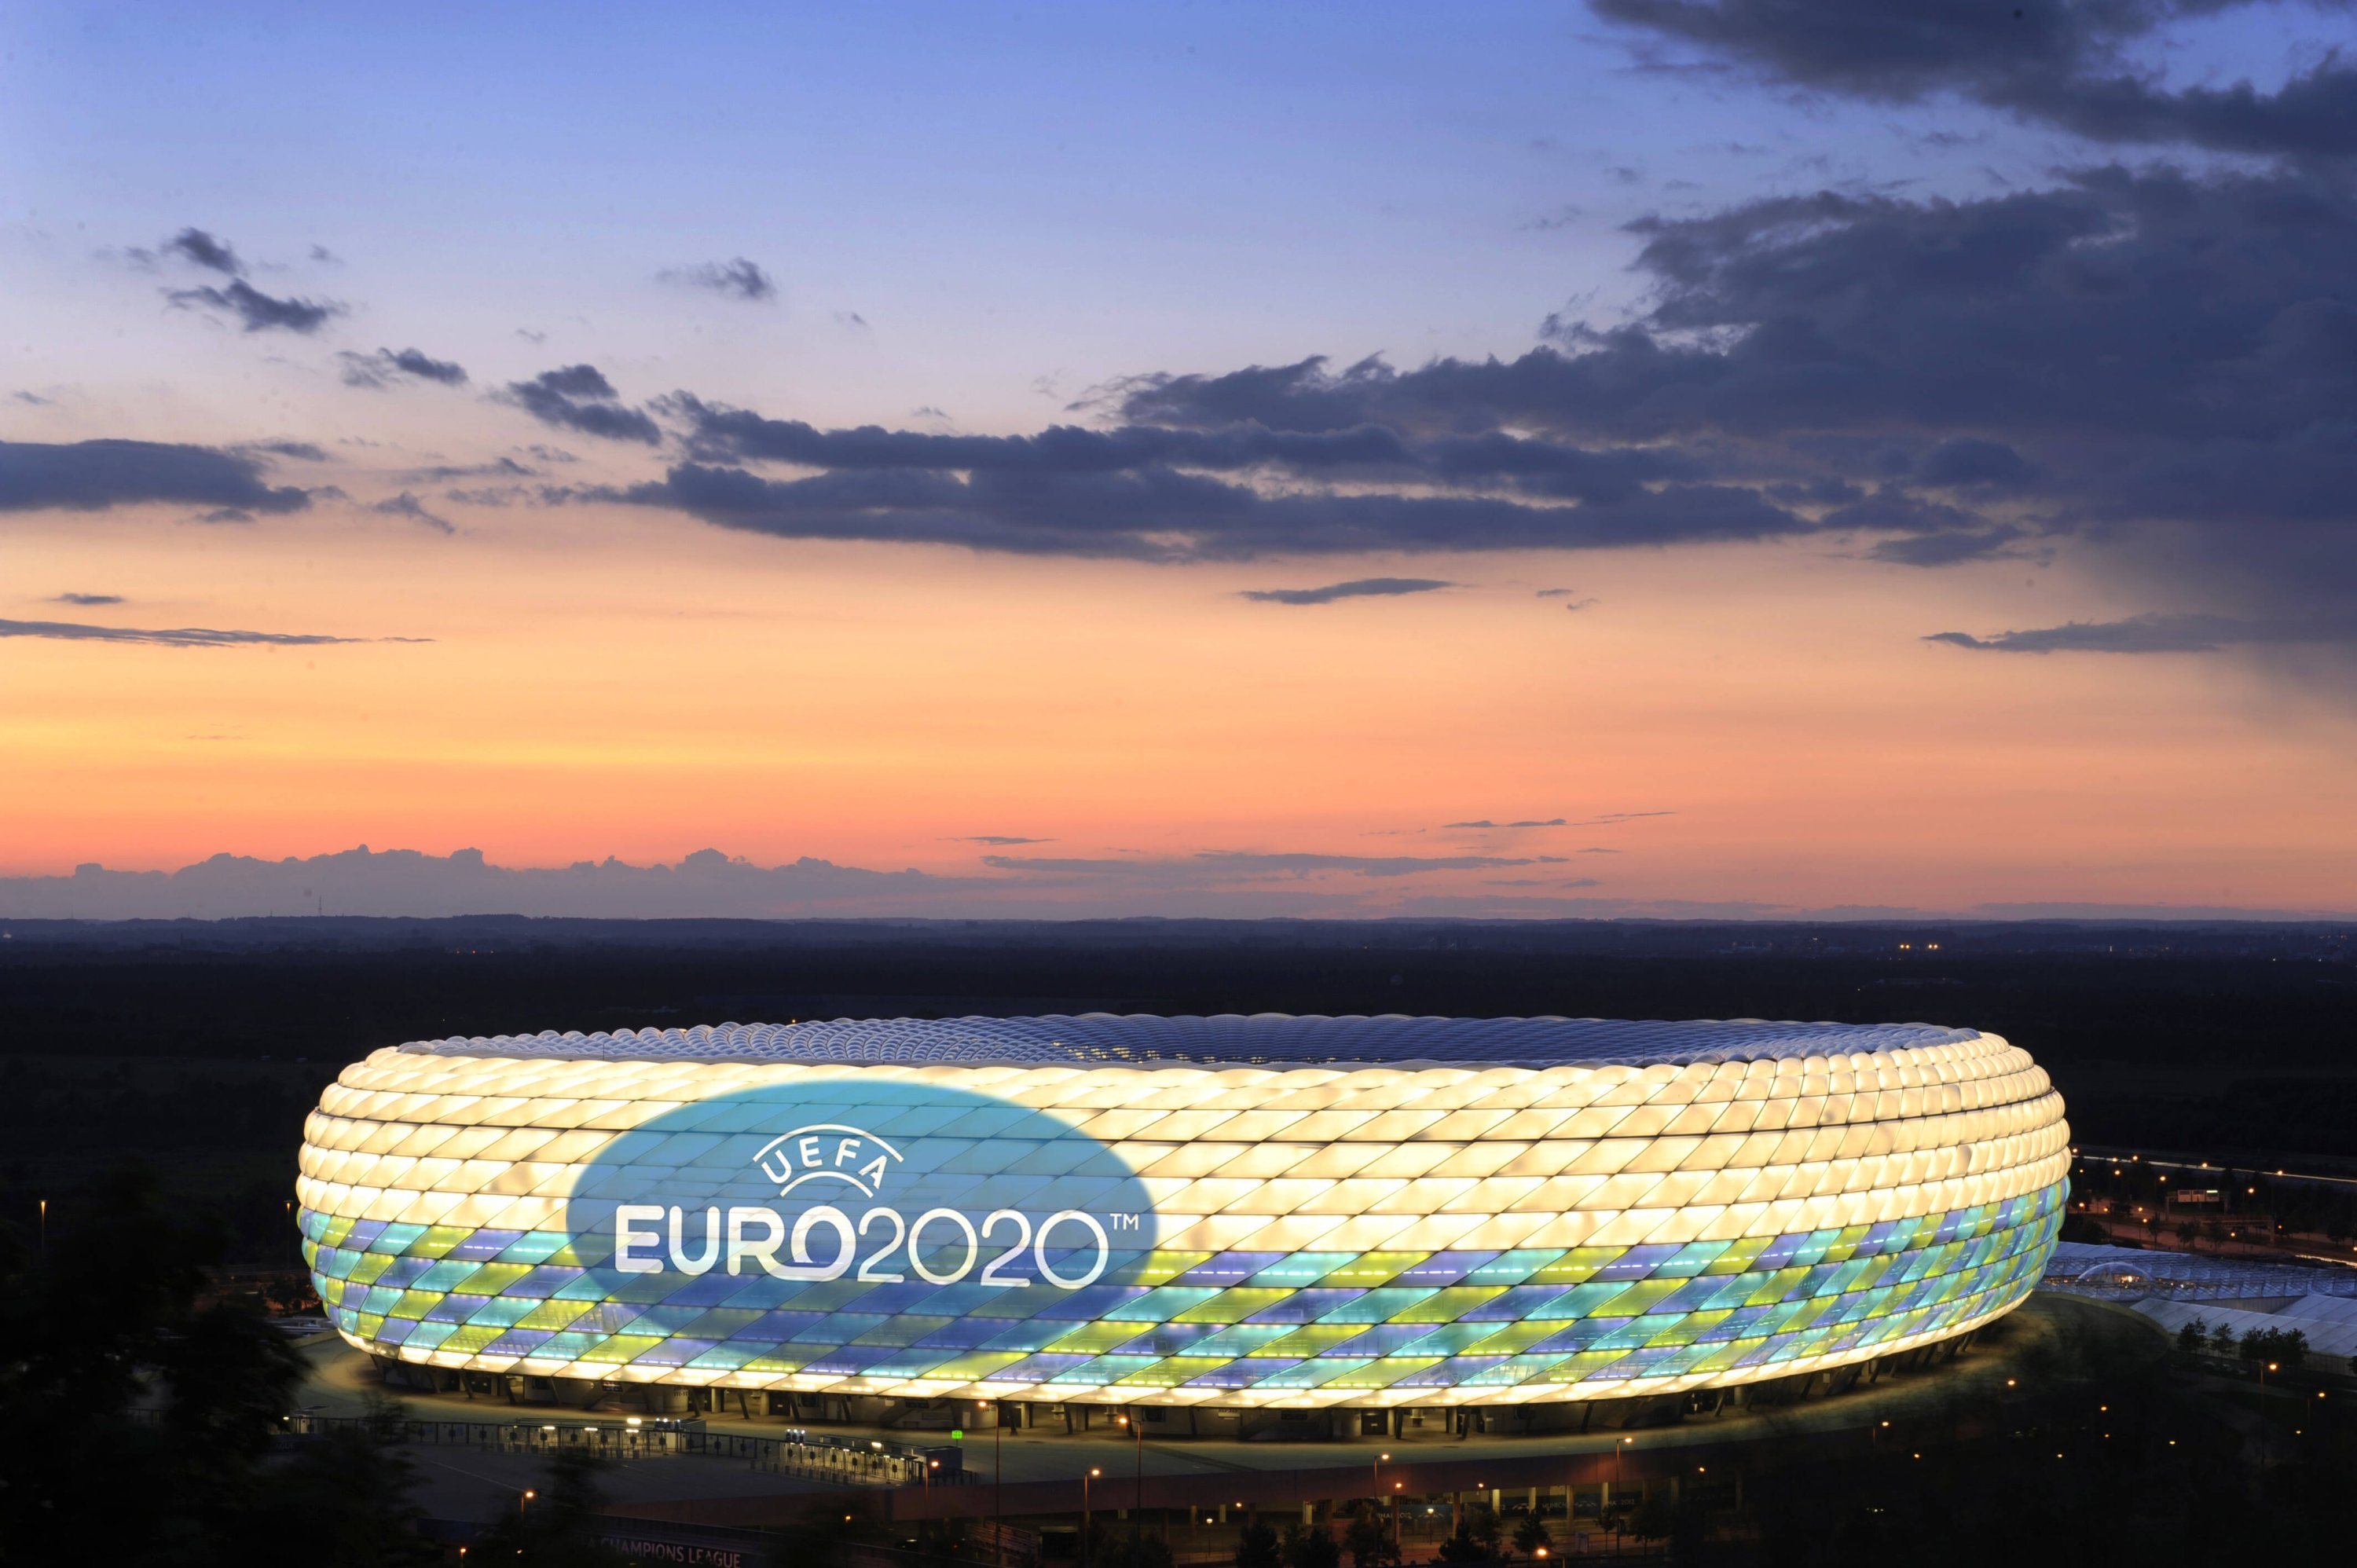 Bayern Munich's home Allianz Arena, a venue for the Euro 2020, displays the event's logo in this undated photo, Munich, Germany.